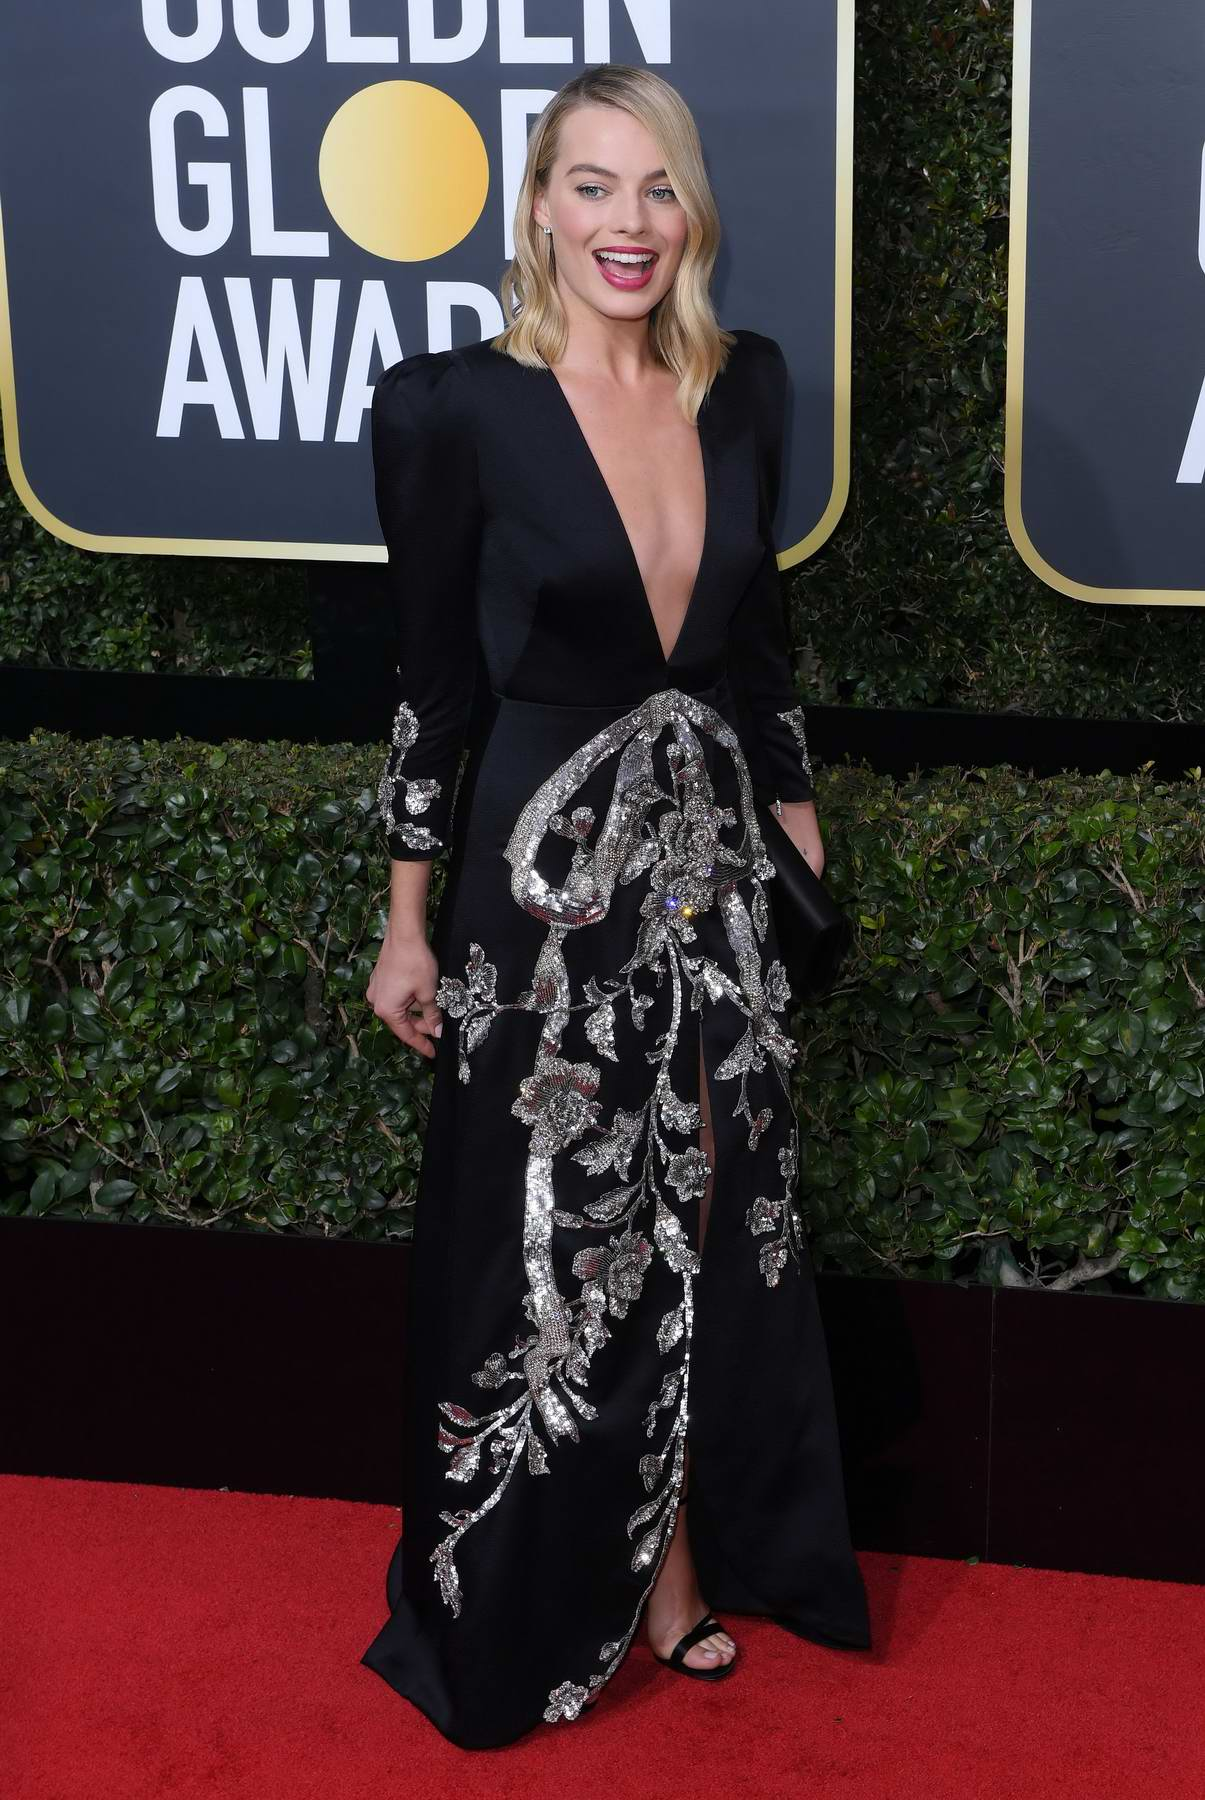 Margot Robbie attends the 75th Annual Golden Globe Awards in Beverly Hills, Los Angeles